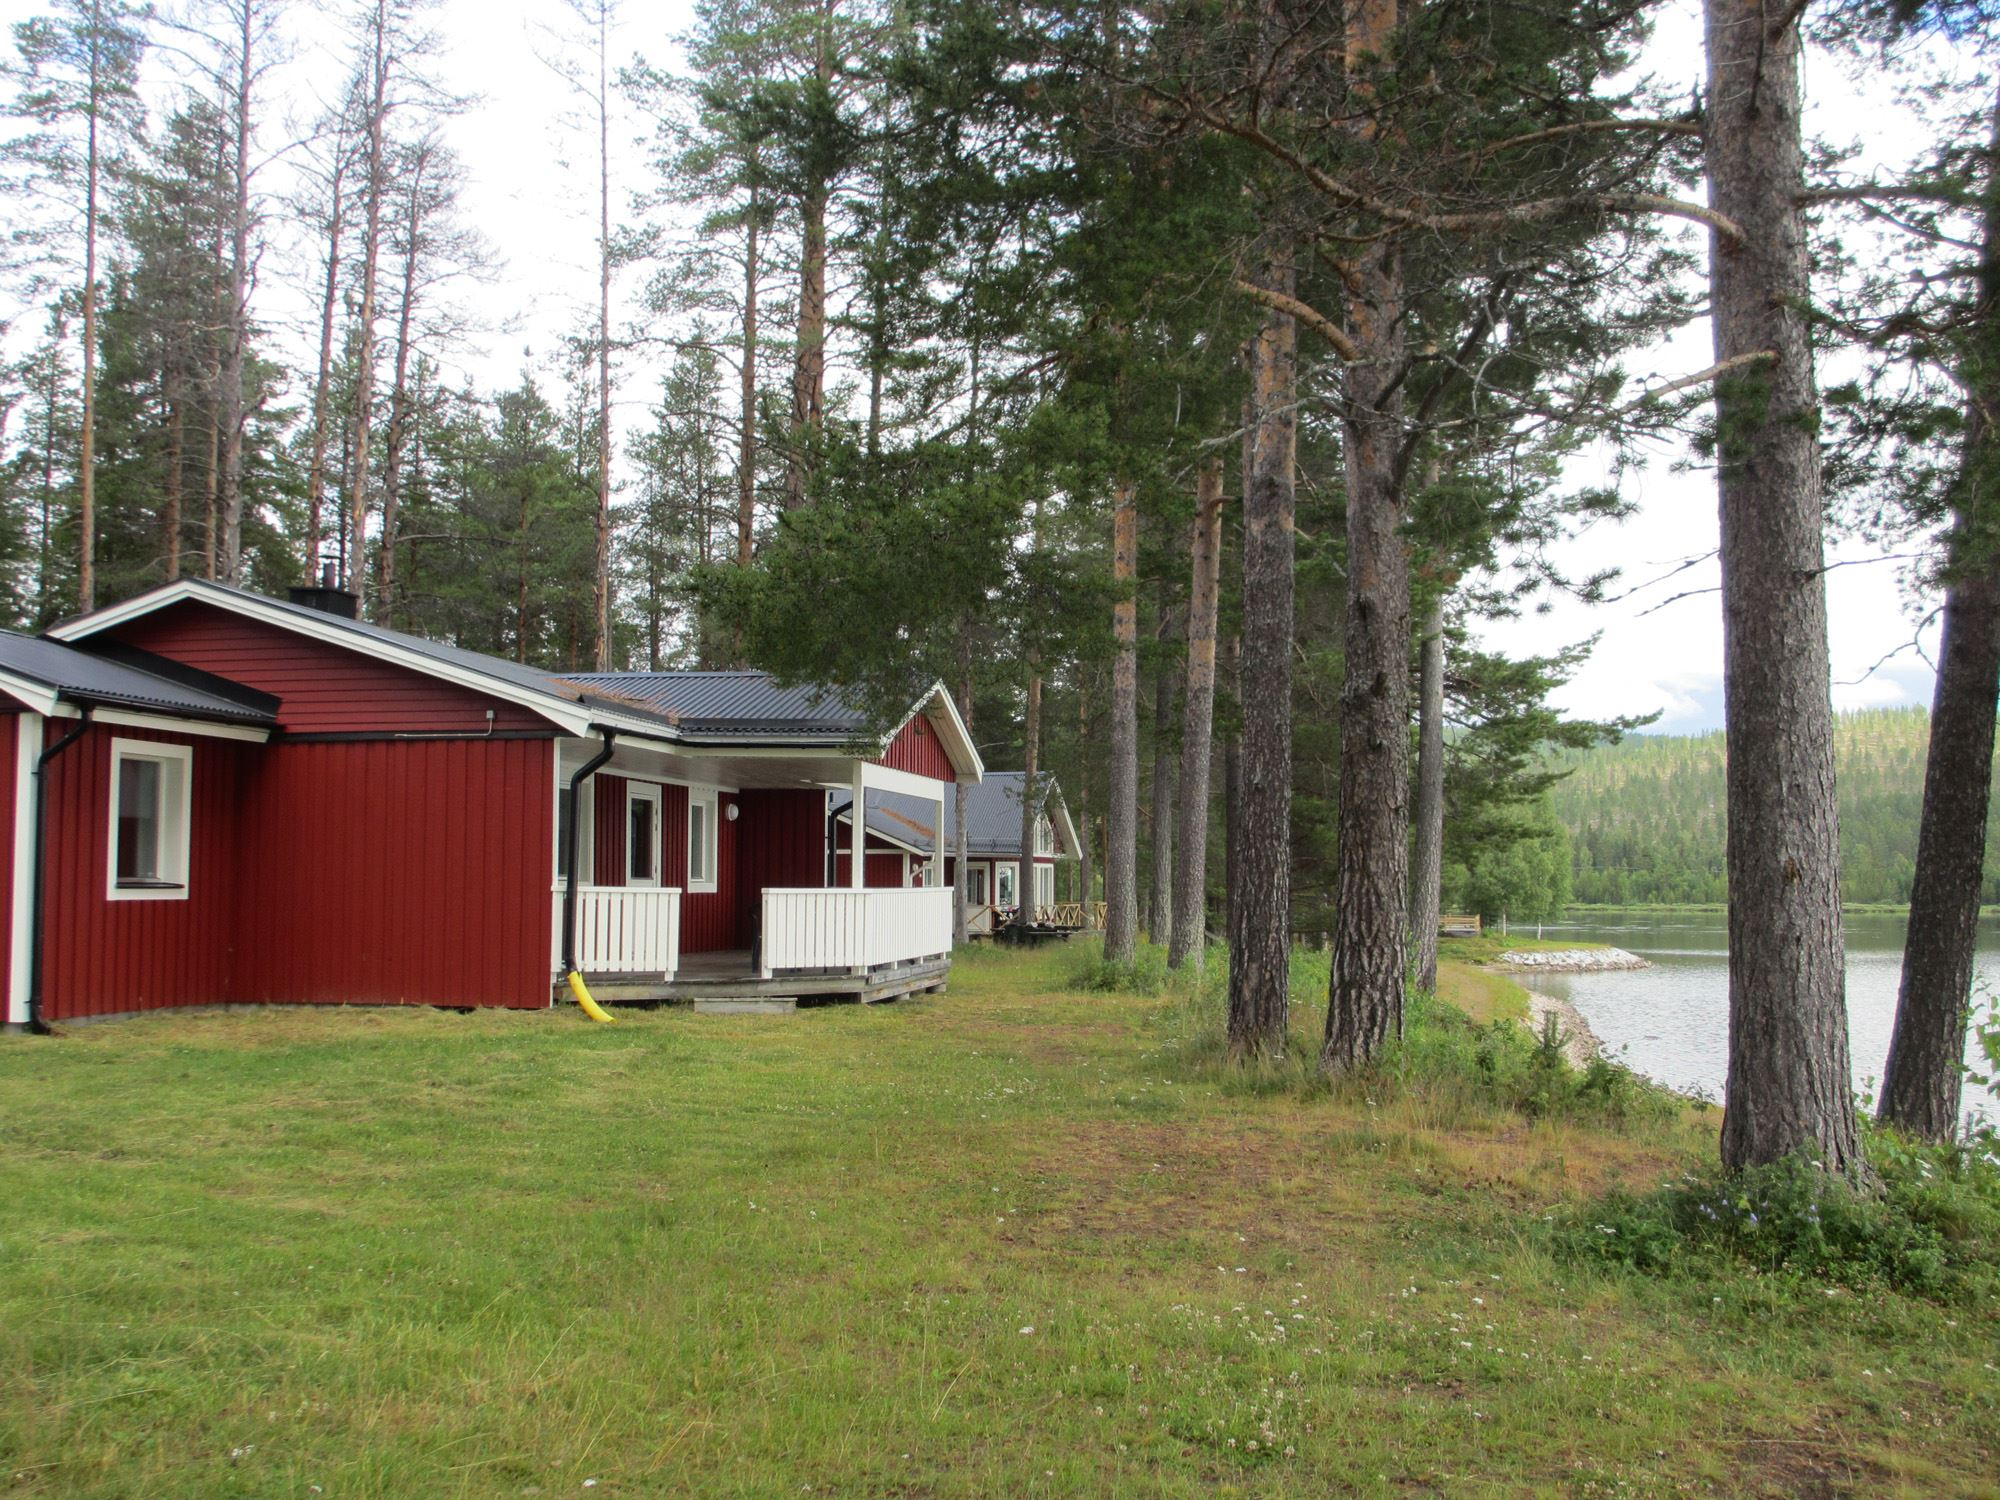 Jokkmokk Camping Center / Stugor